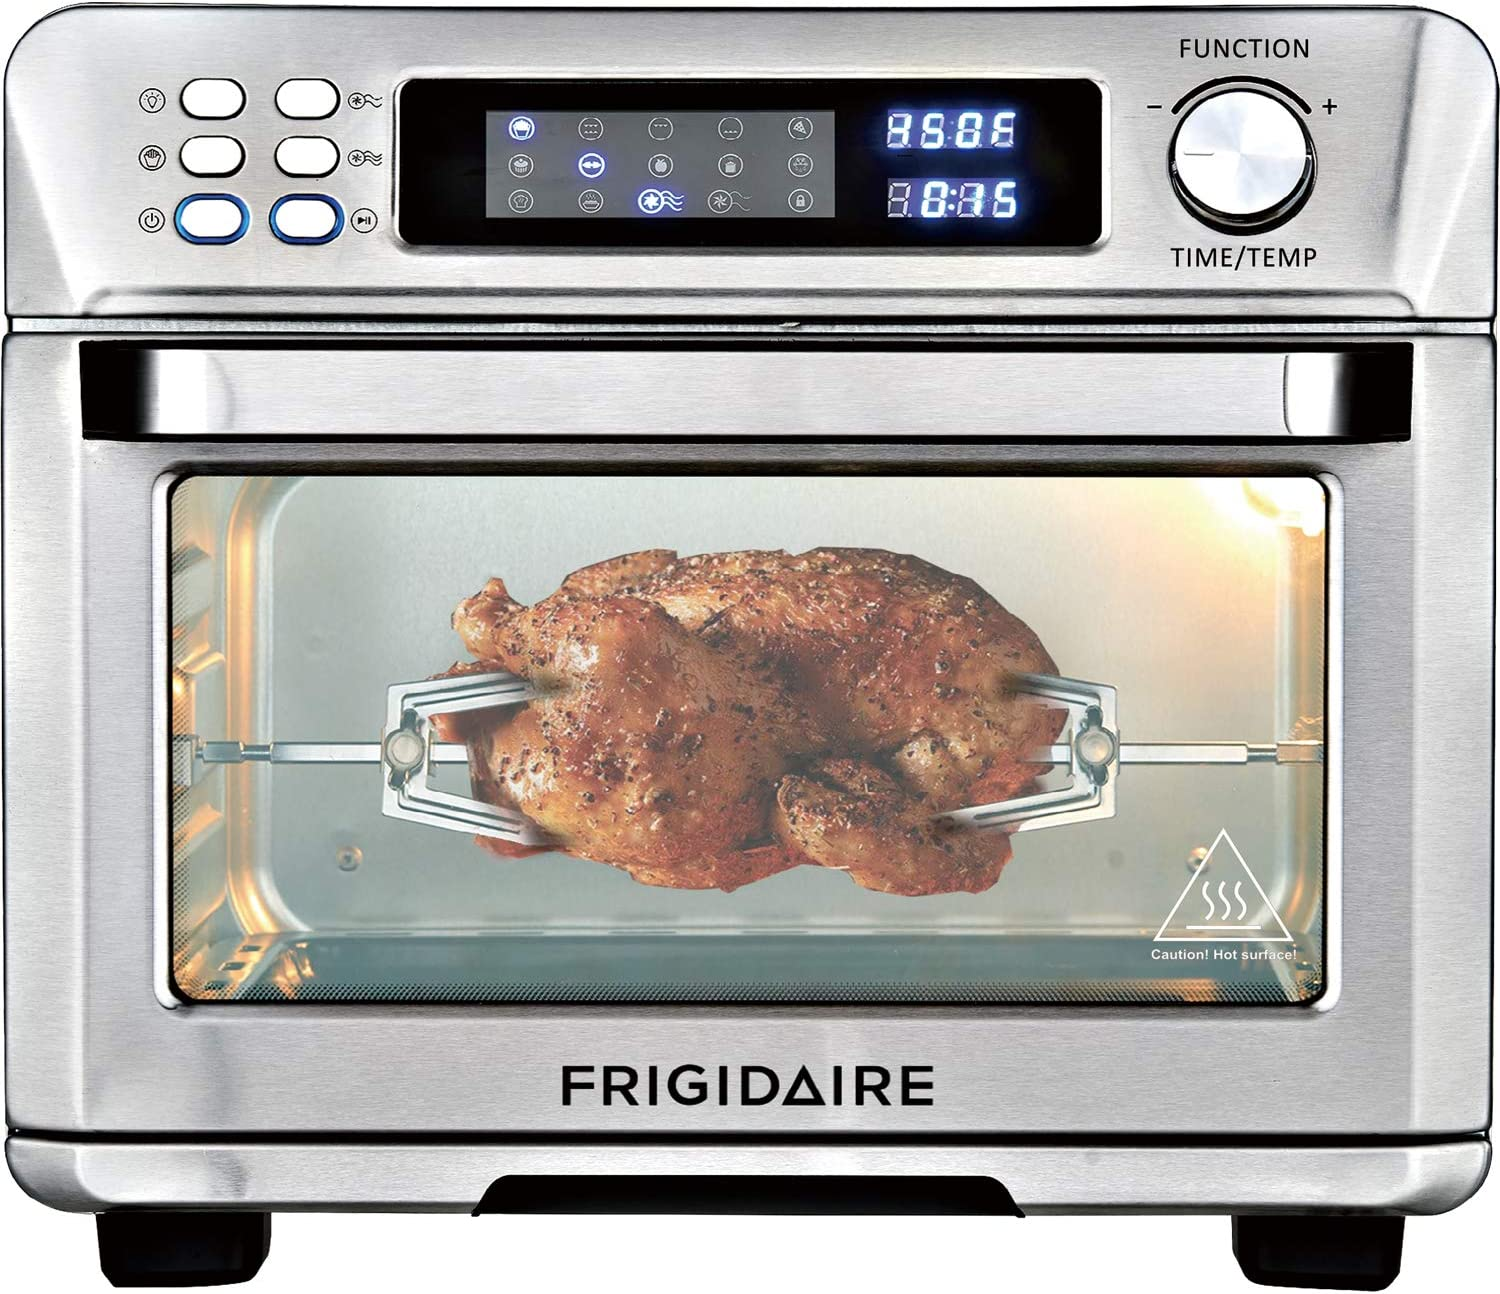 Frigidaire Digital Air Fryer Toaster Oven 27 Quart (25L) Stainless Steel EAFO111-SS With Interior Light, Rotisserie Set and 11 Programs for Airfrying, Convection, Pizza, Dehydrate, Slow Cook and More